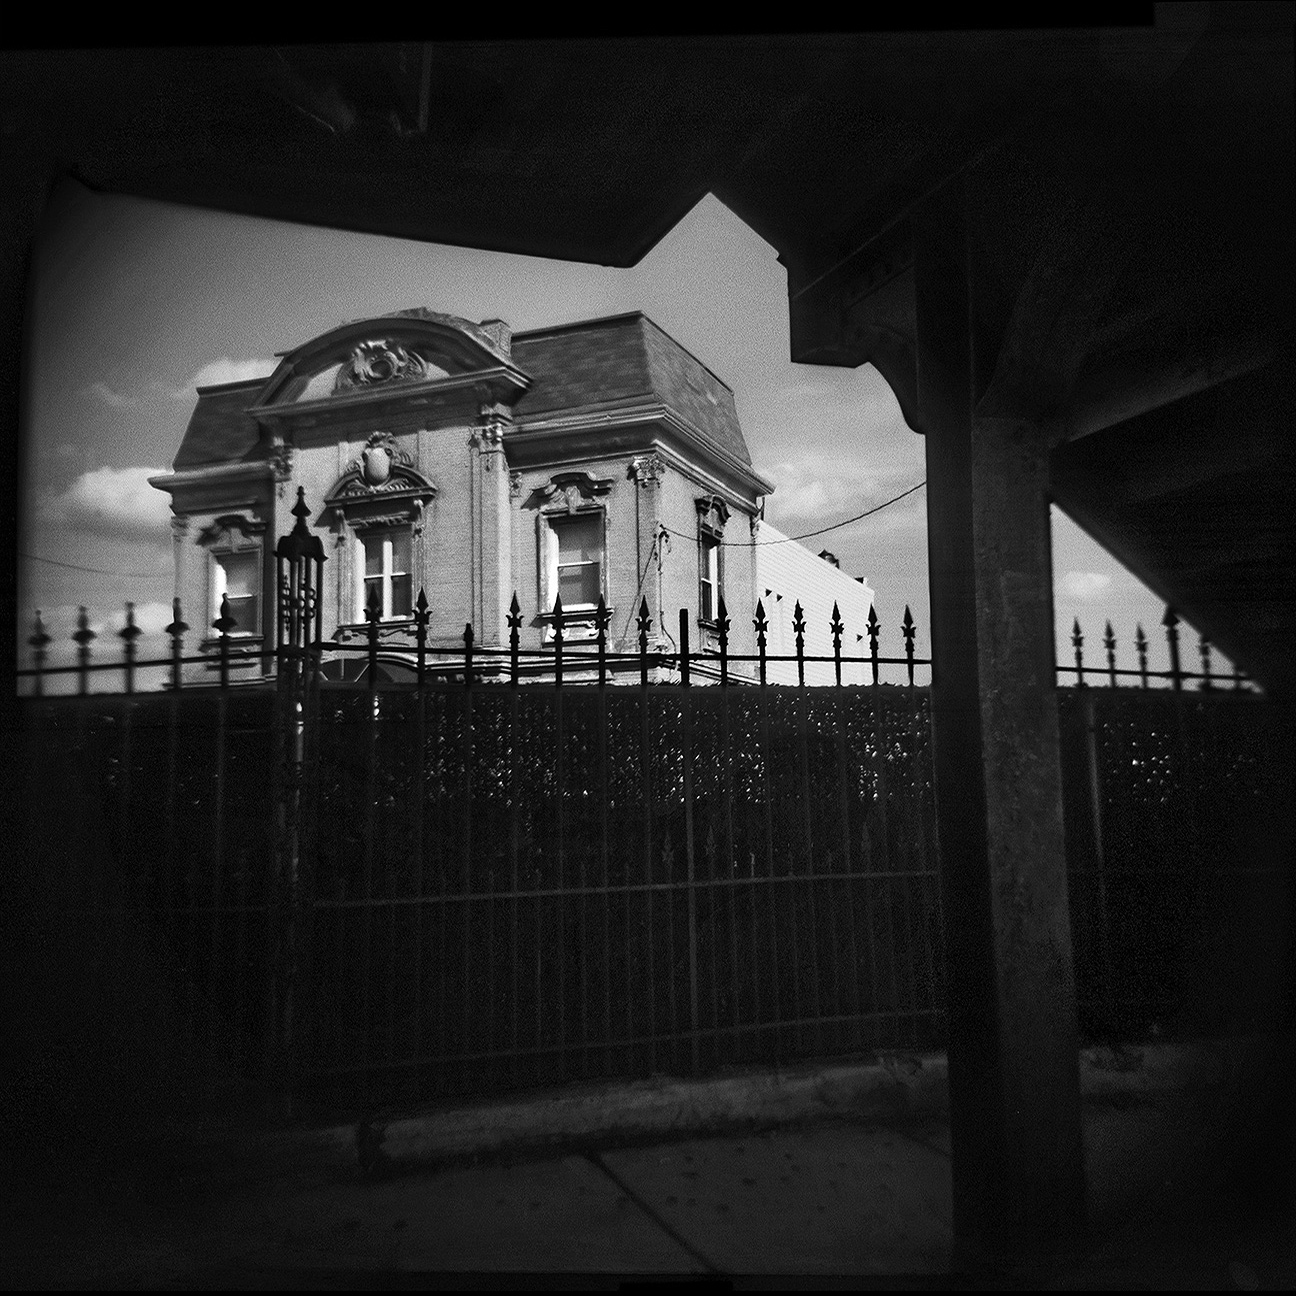 08-NYC-HOLGA-QD-Oct2014-FACEBOOK